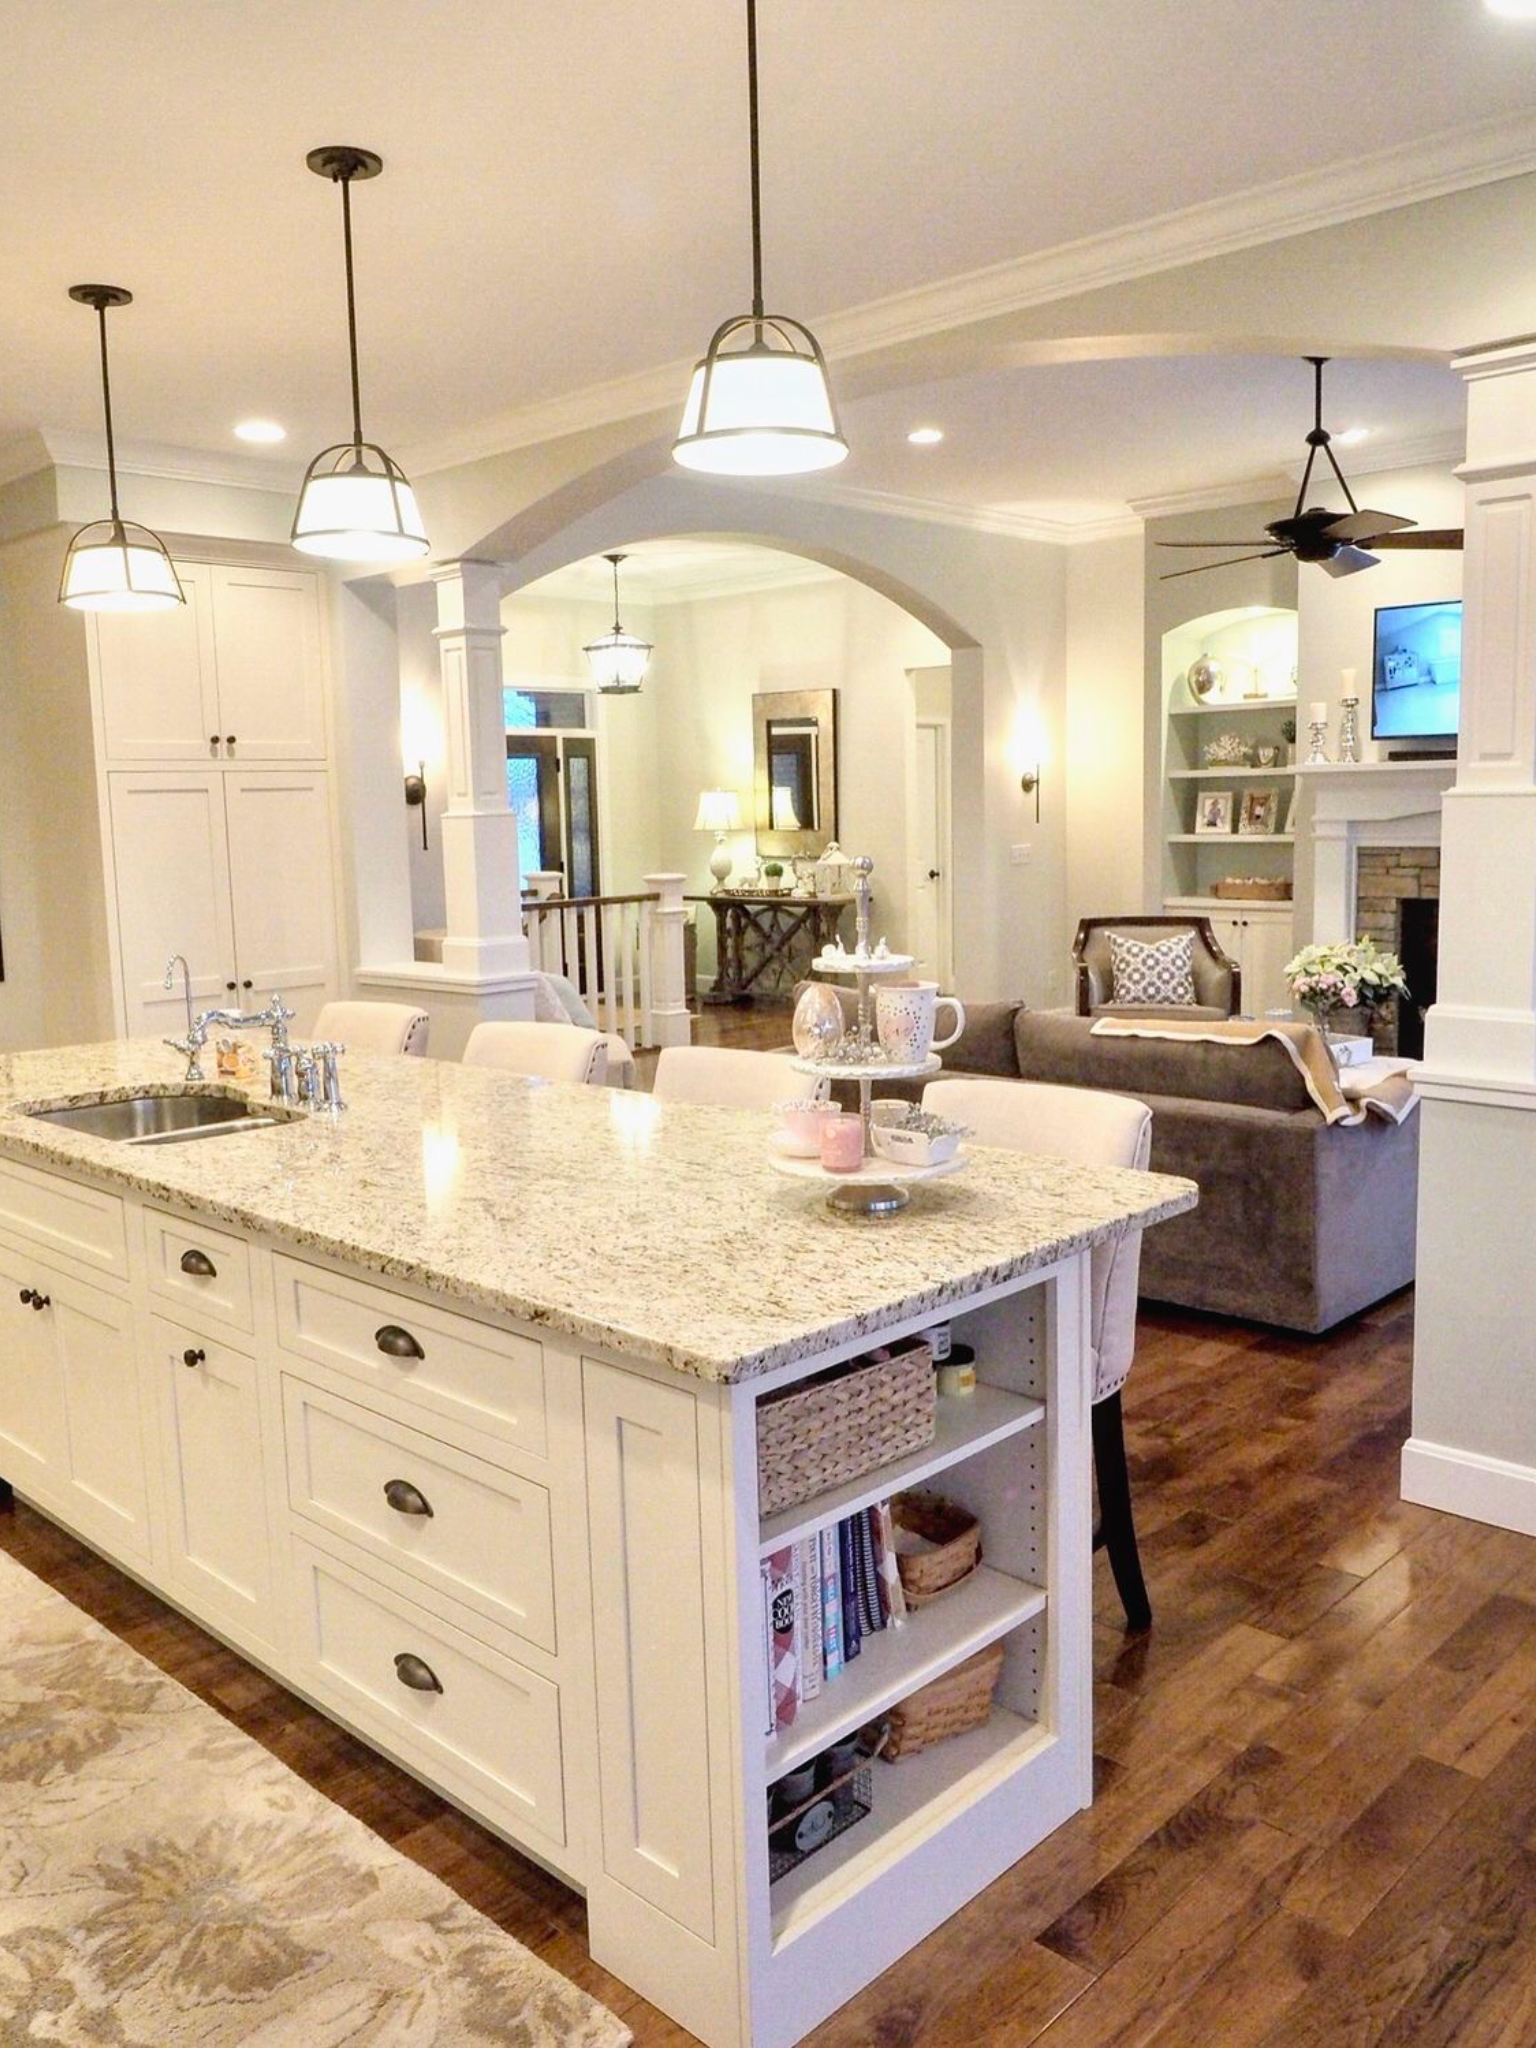 off white kitchen cabinets wooden kids sherwin williams conservative gray new venetian gold granite open layout floor plan concept hickory wood